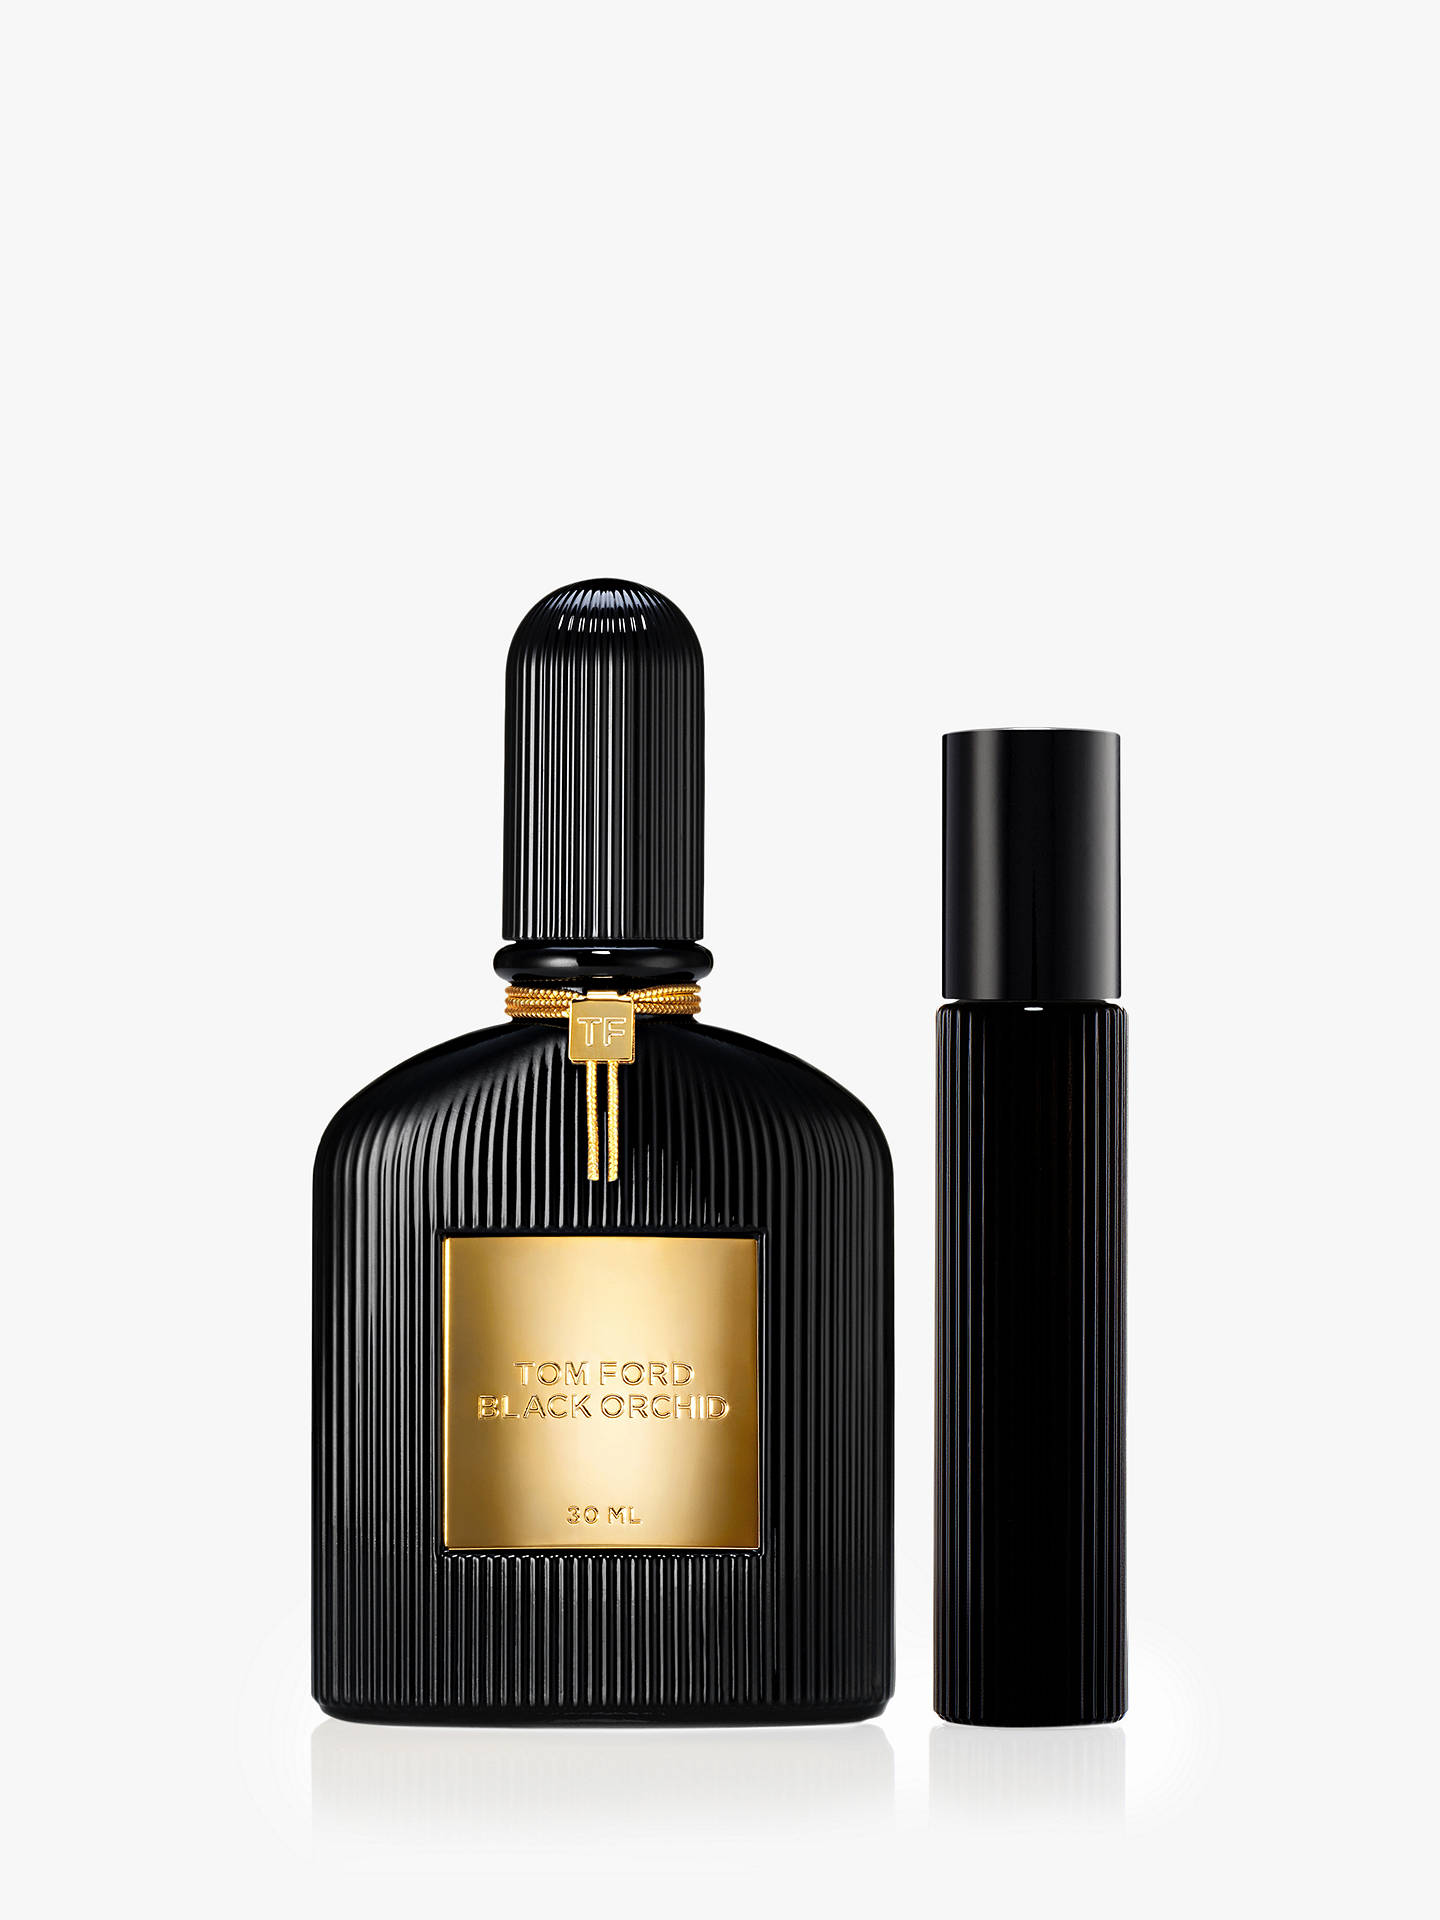 Buy TOM FORD Black Orchid Collection 50ml Eau de Parfum Gift Set Online at johnlewis.com